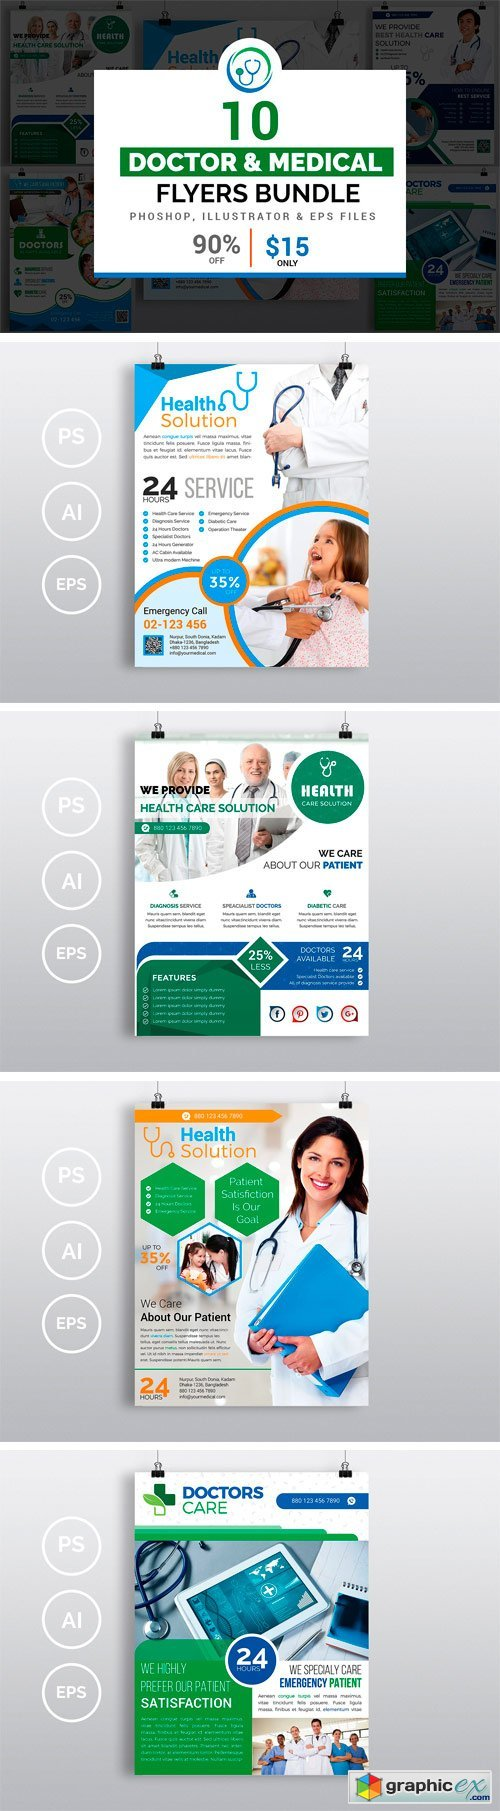 10 doctor medical flyers bundle free download vector stock image